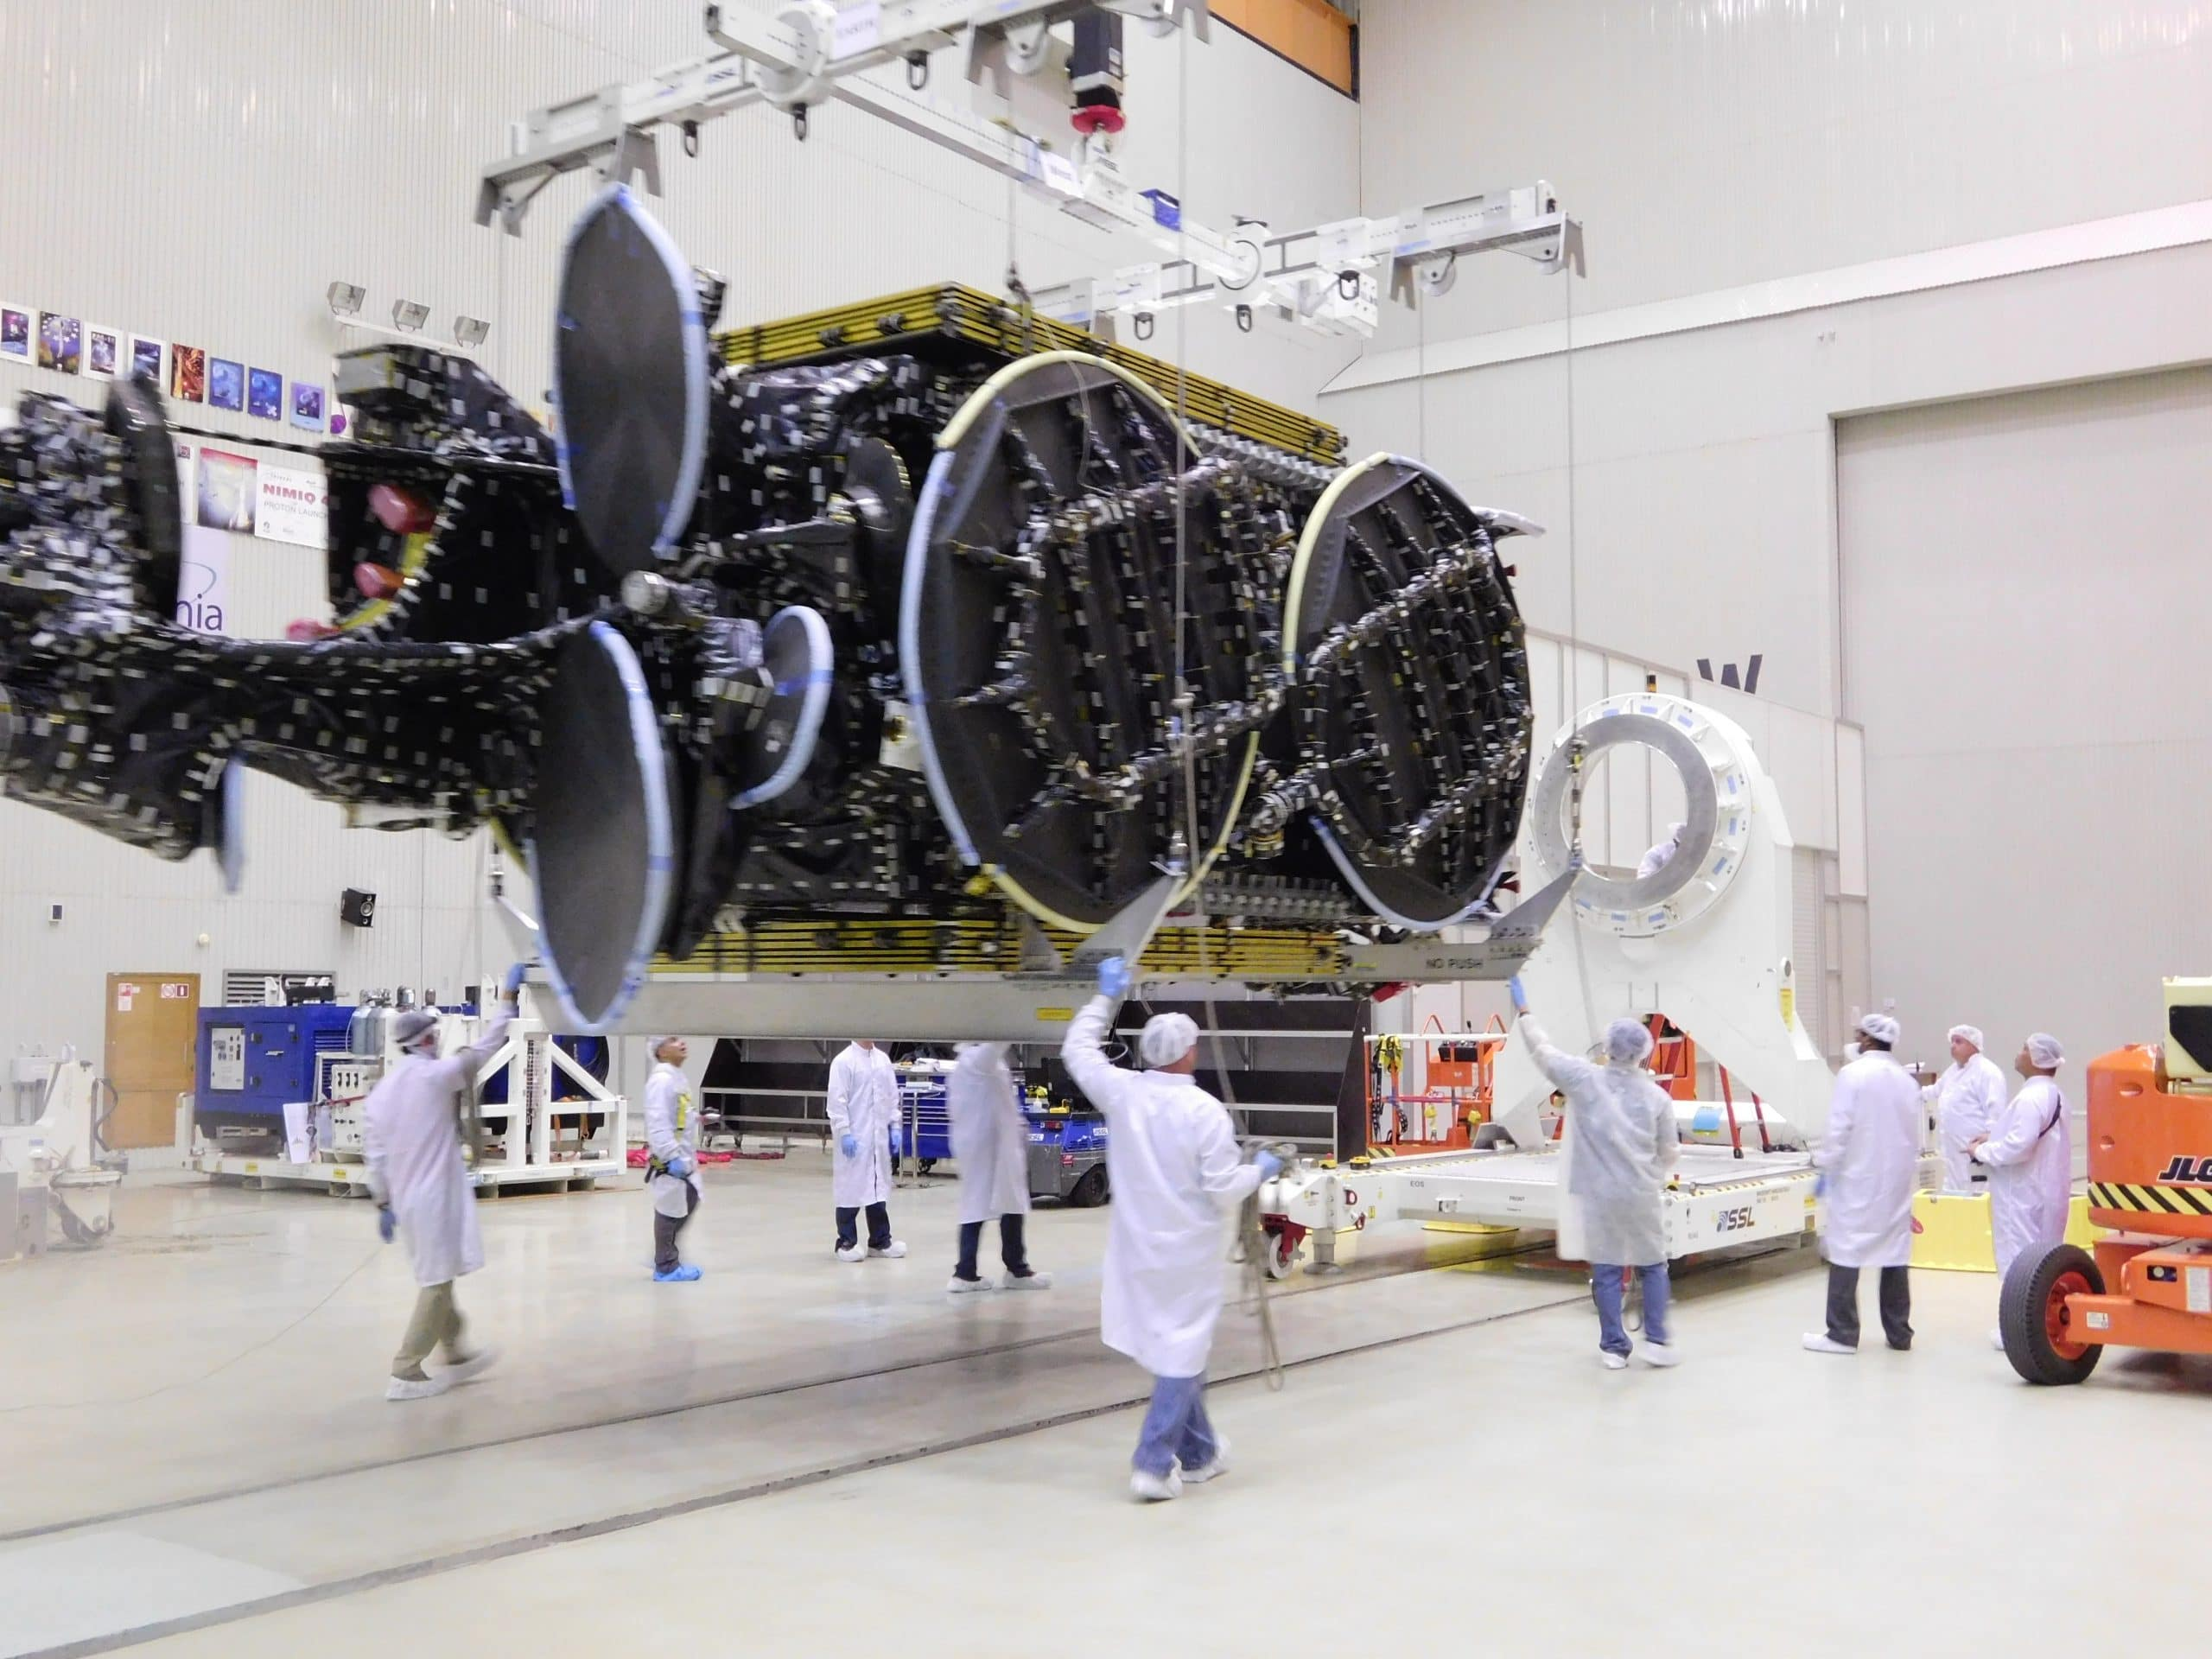 Moving spacecraft to Hall 103